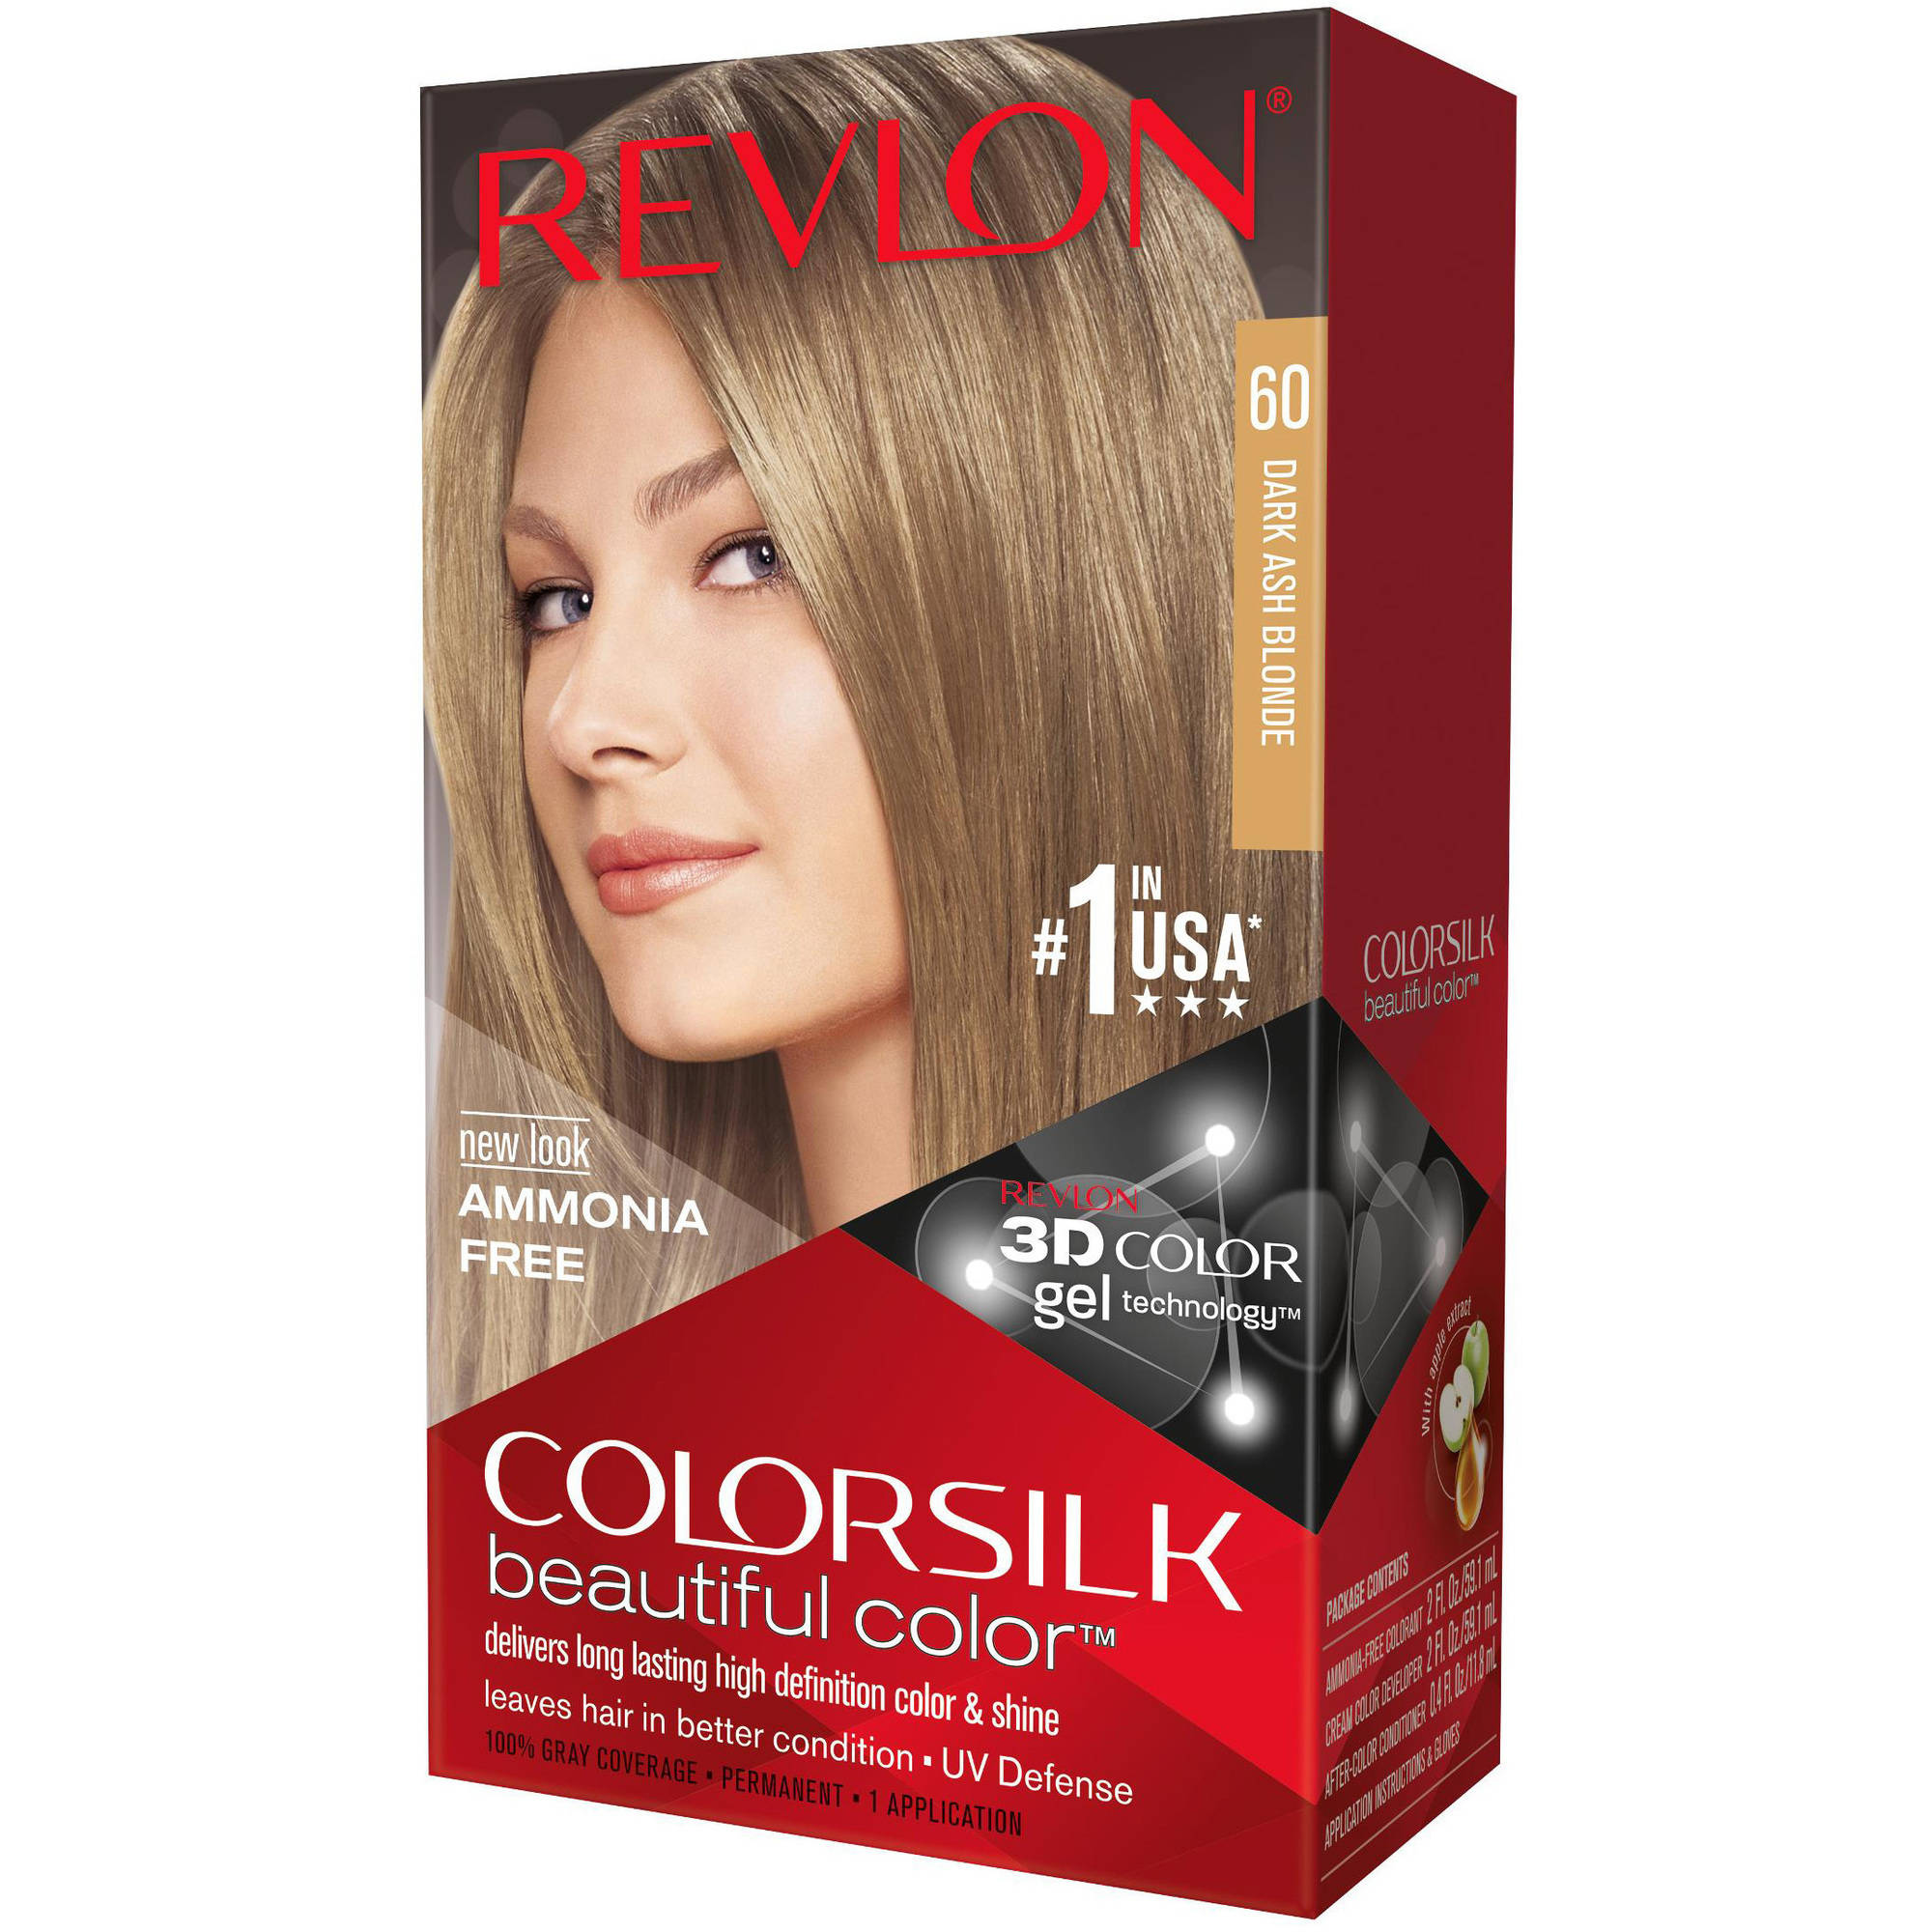 Revlon Colorsilk Beautiful Color Permanent Hair Color, 60 Dark Ash Blonde